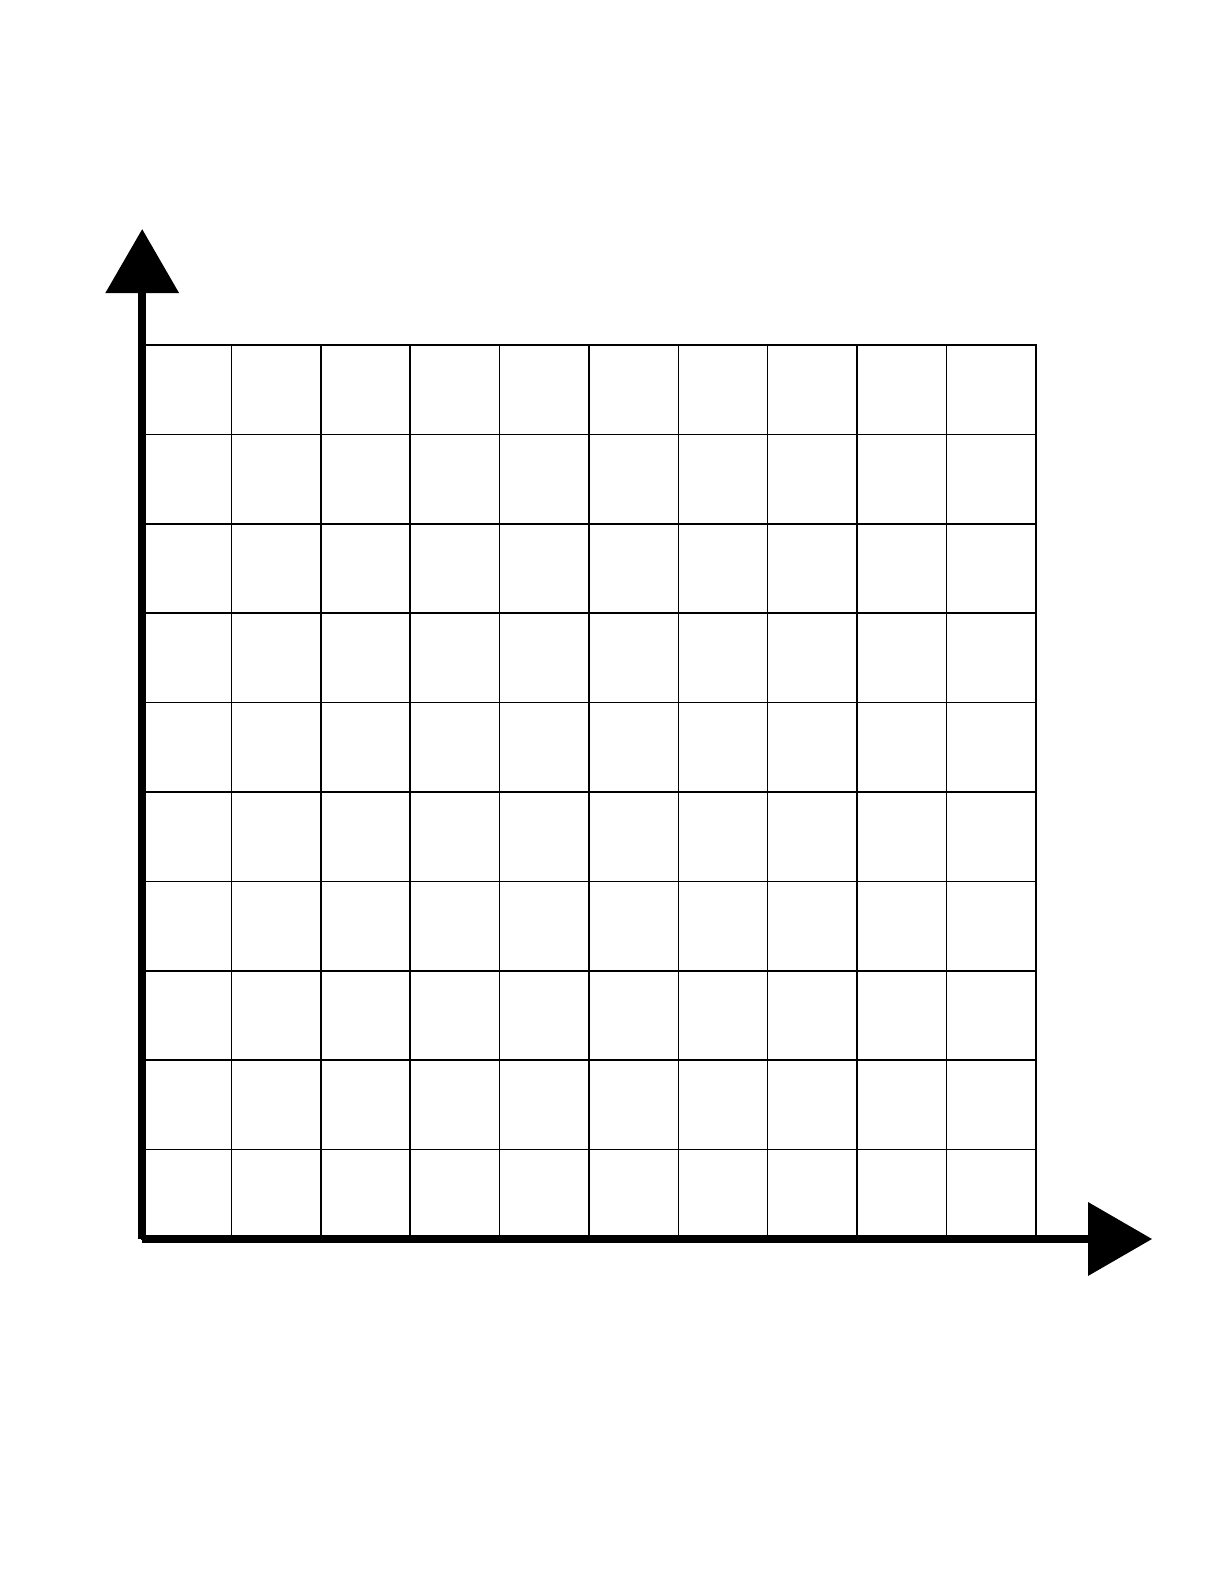 Single Quadrant Cartesian Grid Large Free Download